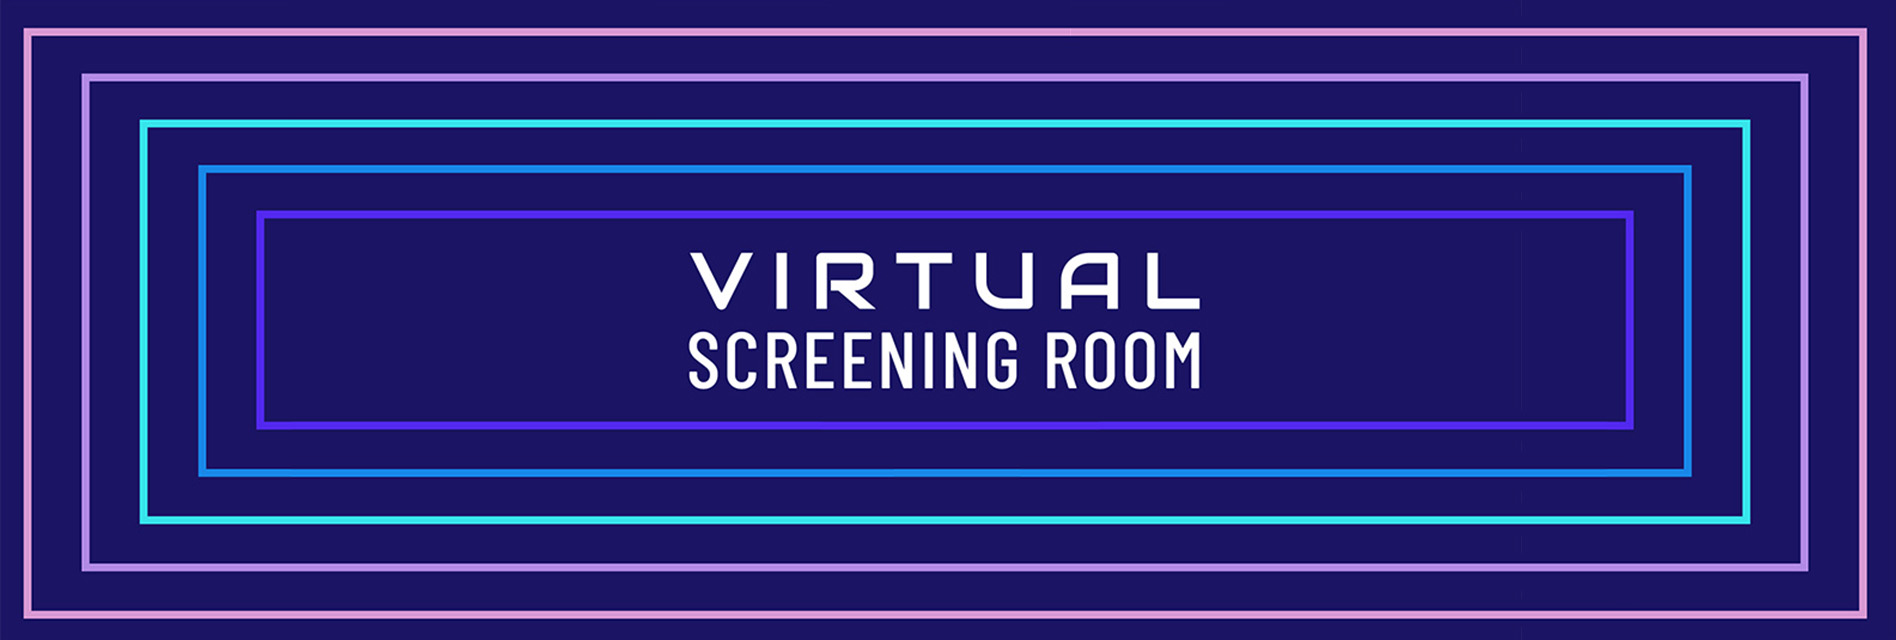 Virtual Screening Room